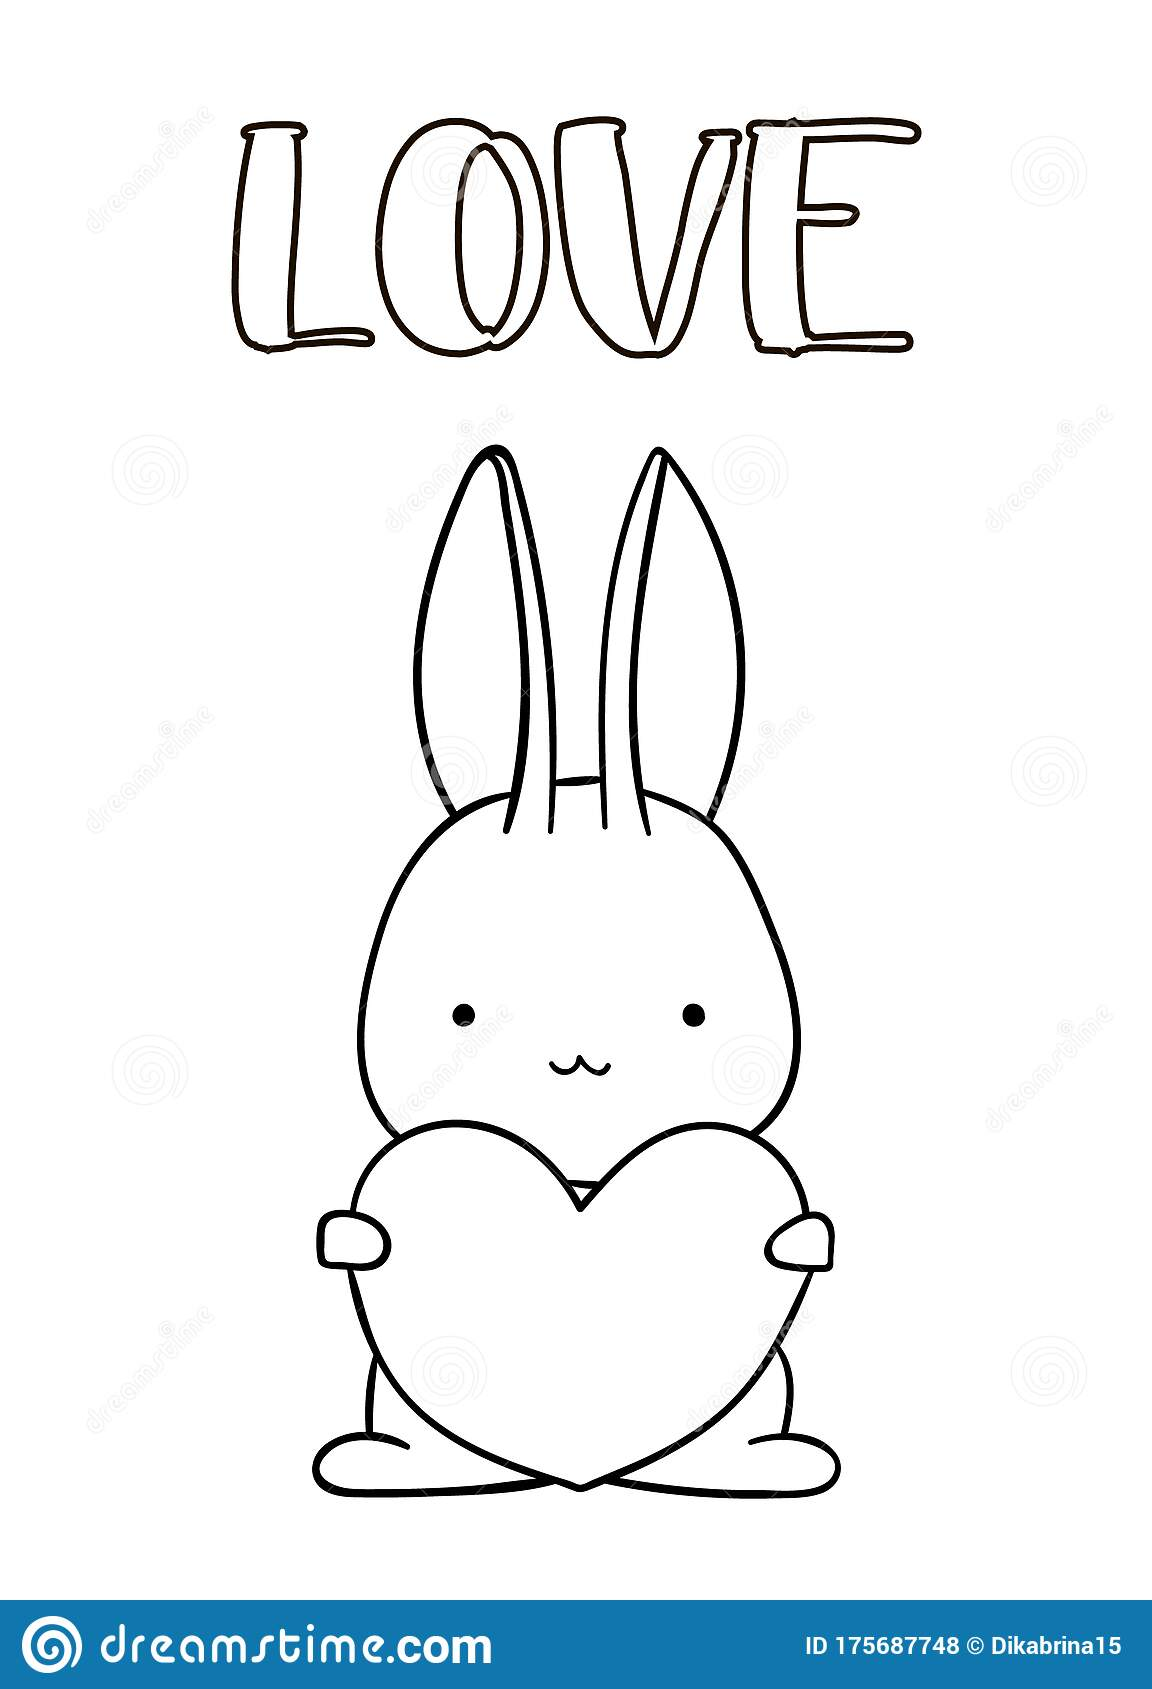 Coloring Pages Black And White Cute Hand Drawn Bunny With Heart Doodle Lettering Love Stock Vector Illustration Of Love Outline 175687748